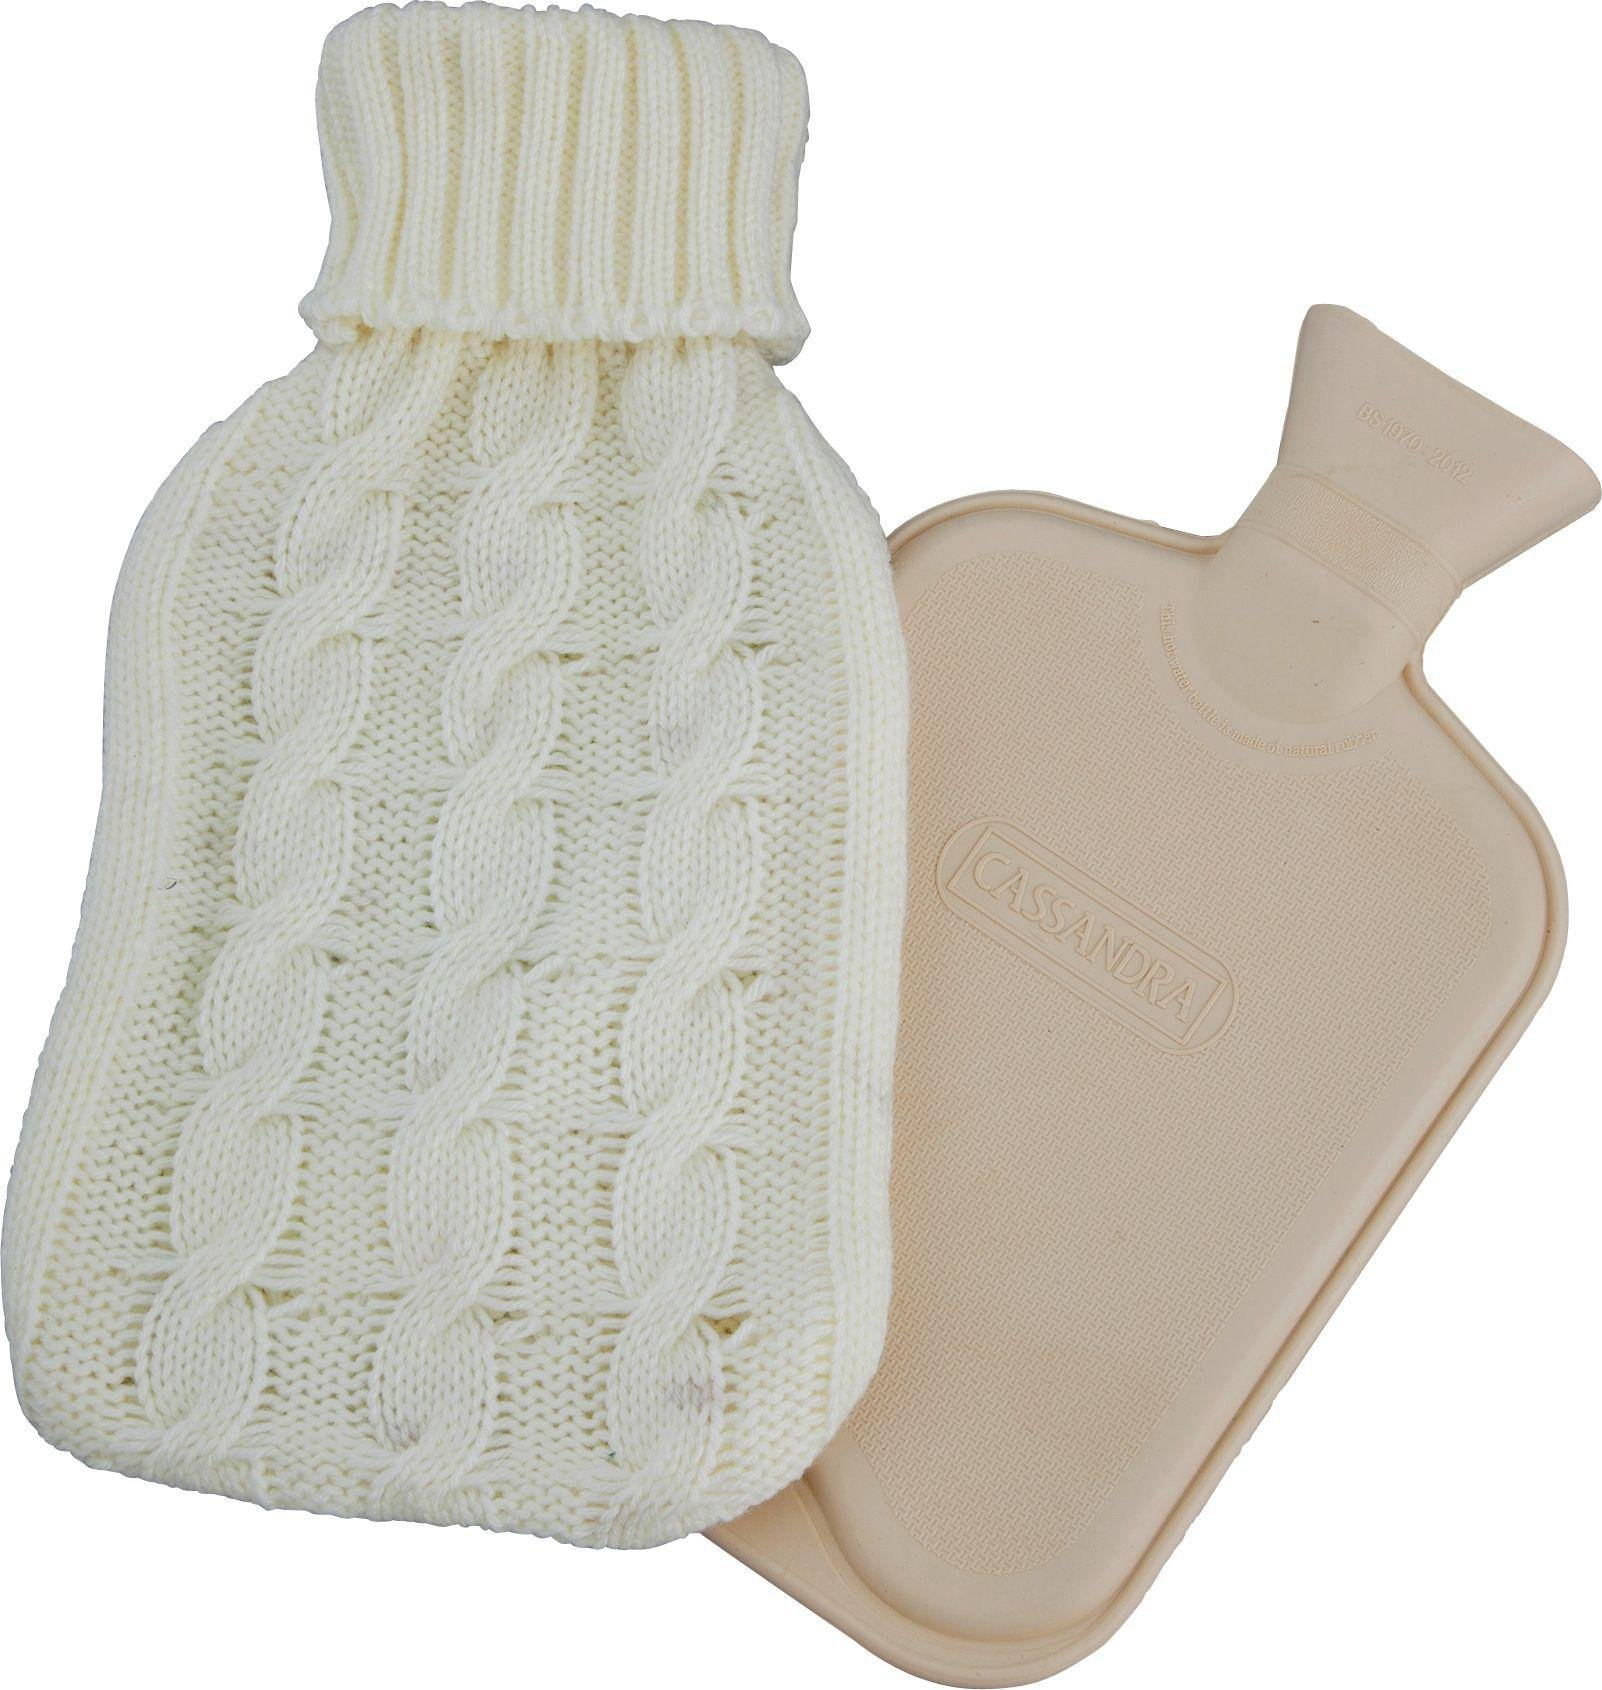 Hot Water Bottle with Chunky Knit Cover